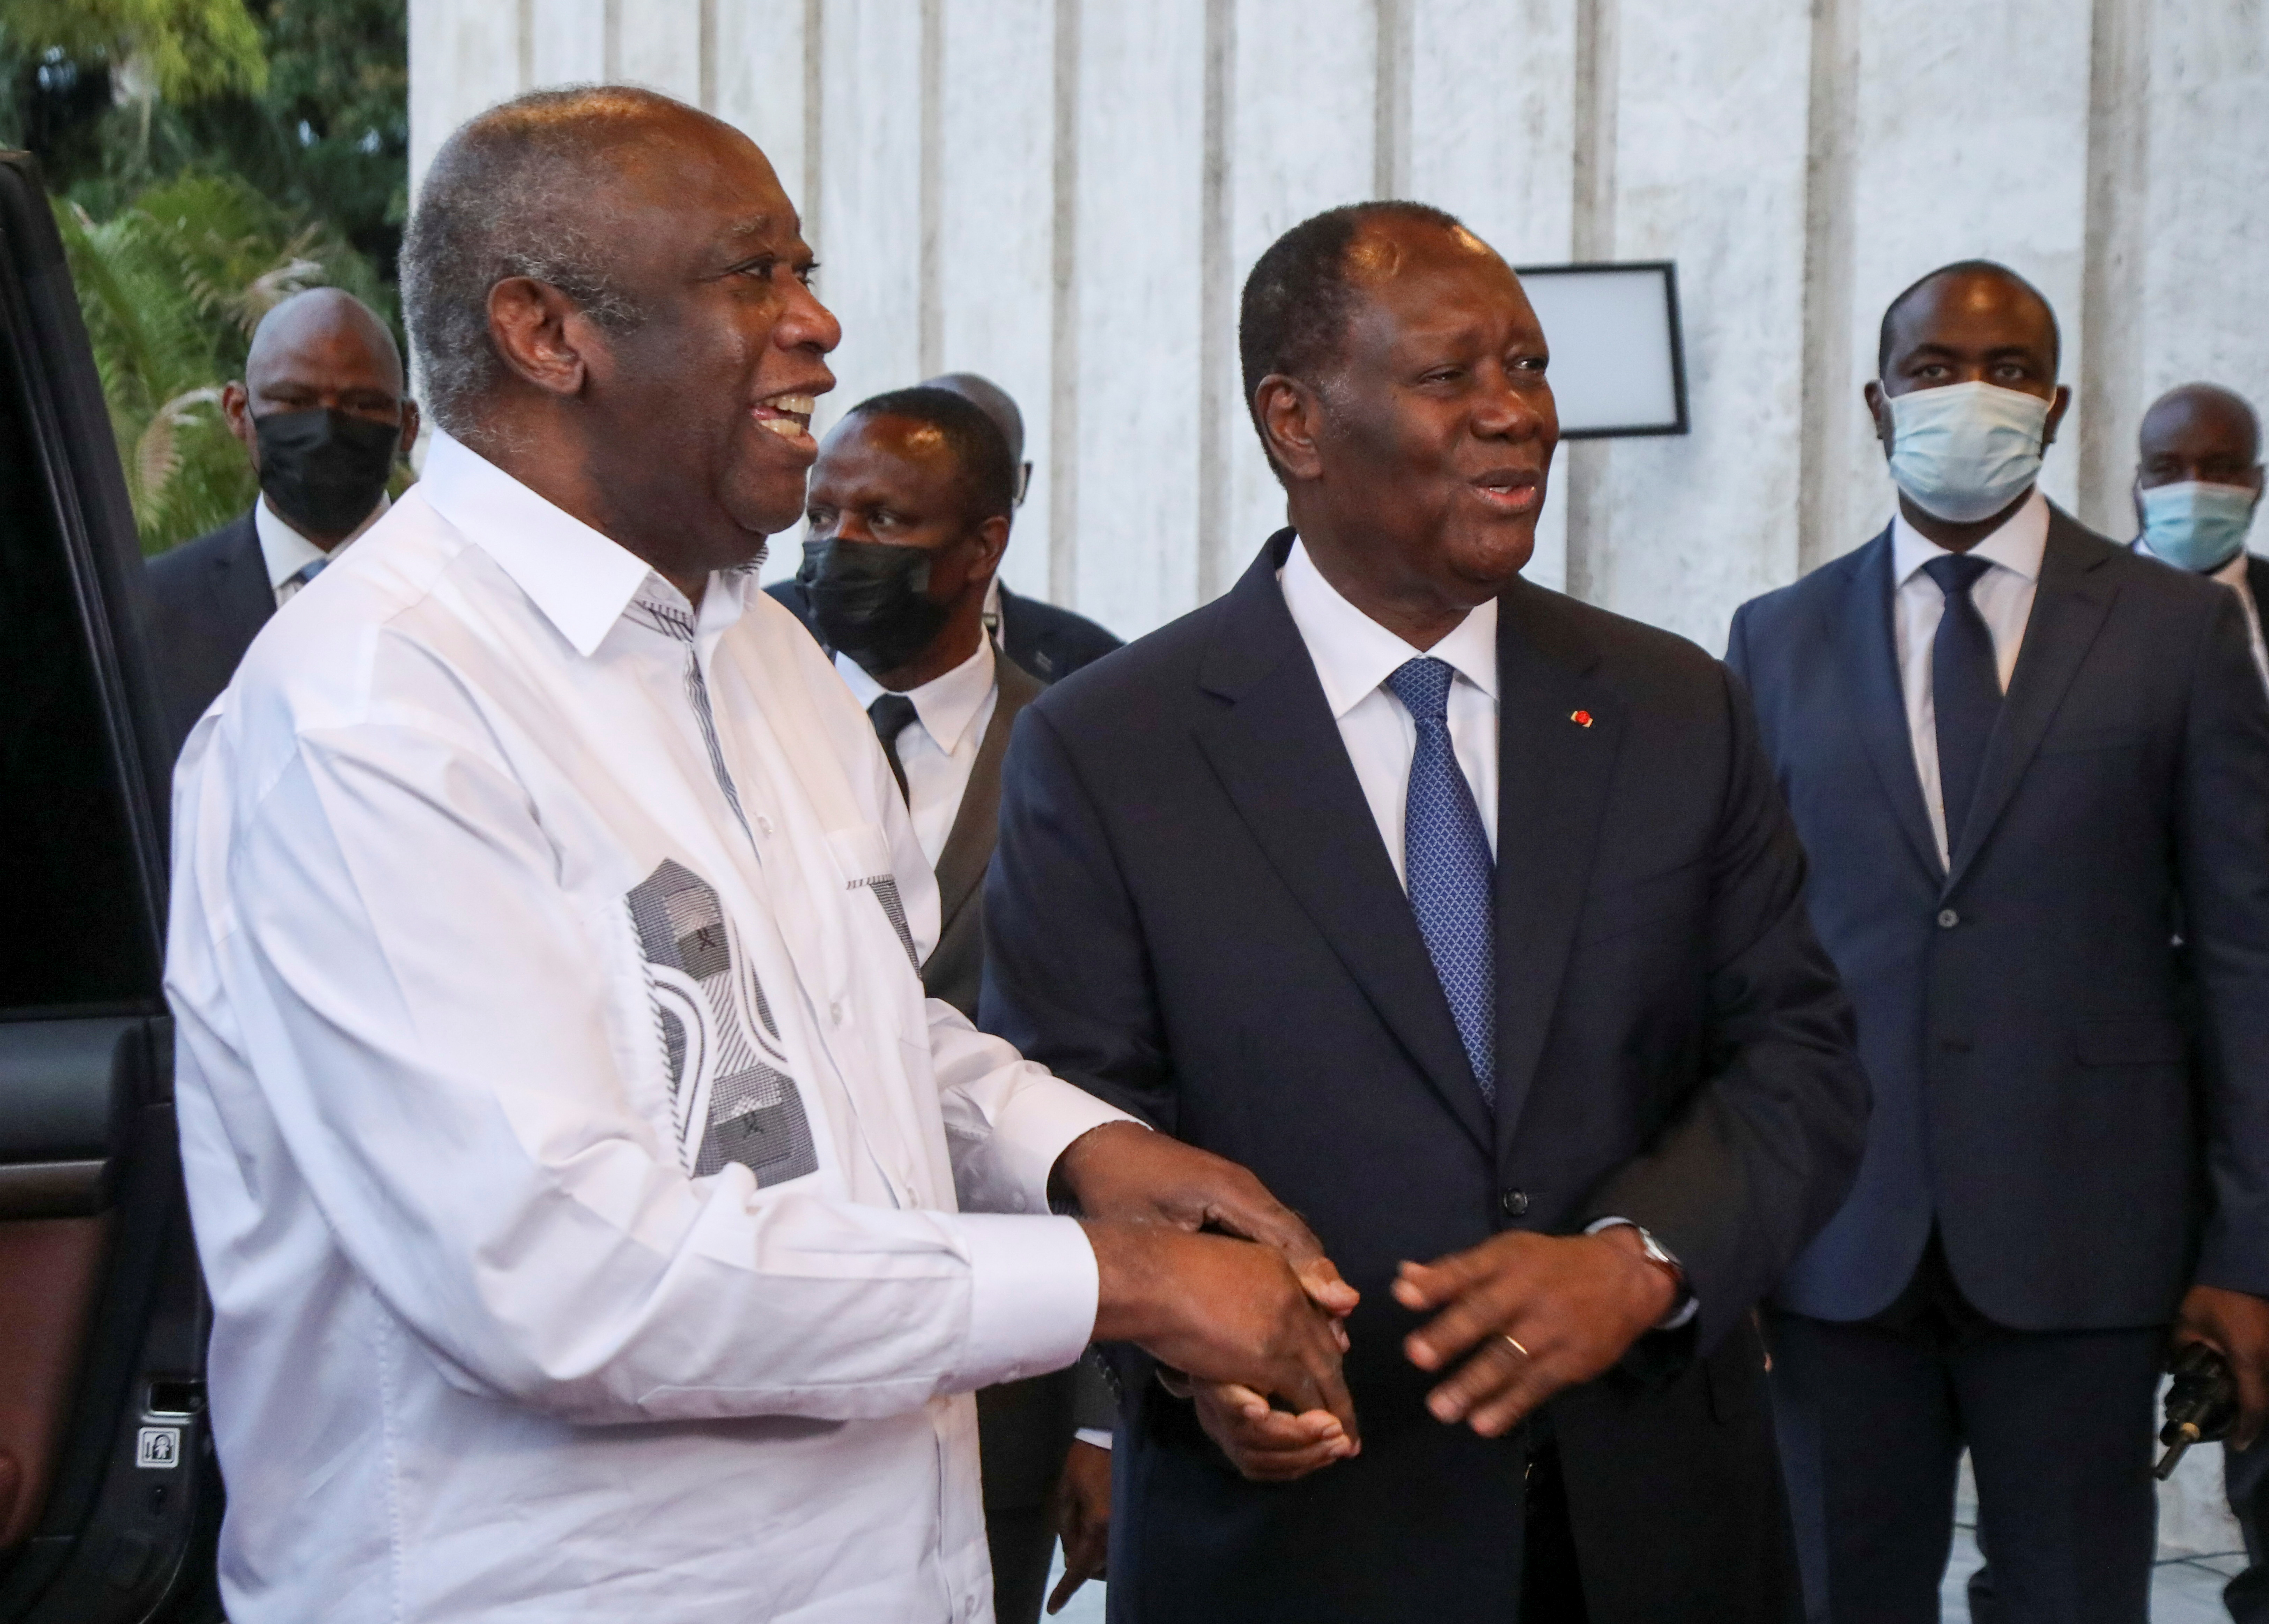 Ivory Coast's President Alassane Ouattara meets with former President Laurent Gbagbo at the presidential palace in Abidjan, Ivory Coast July 27, 2021. REUTERS/Luc Gnago